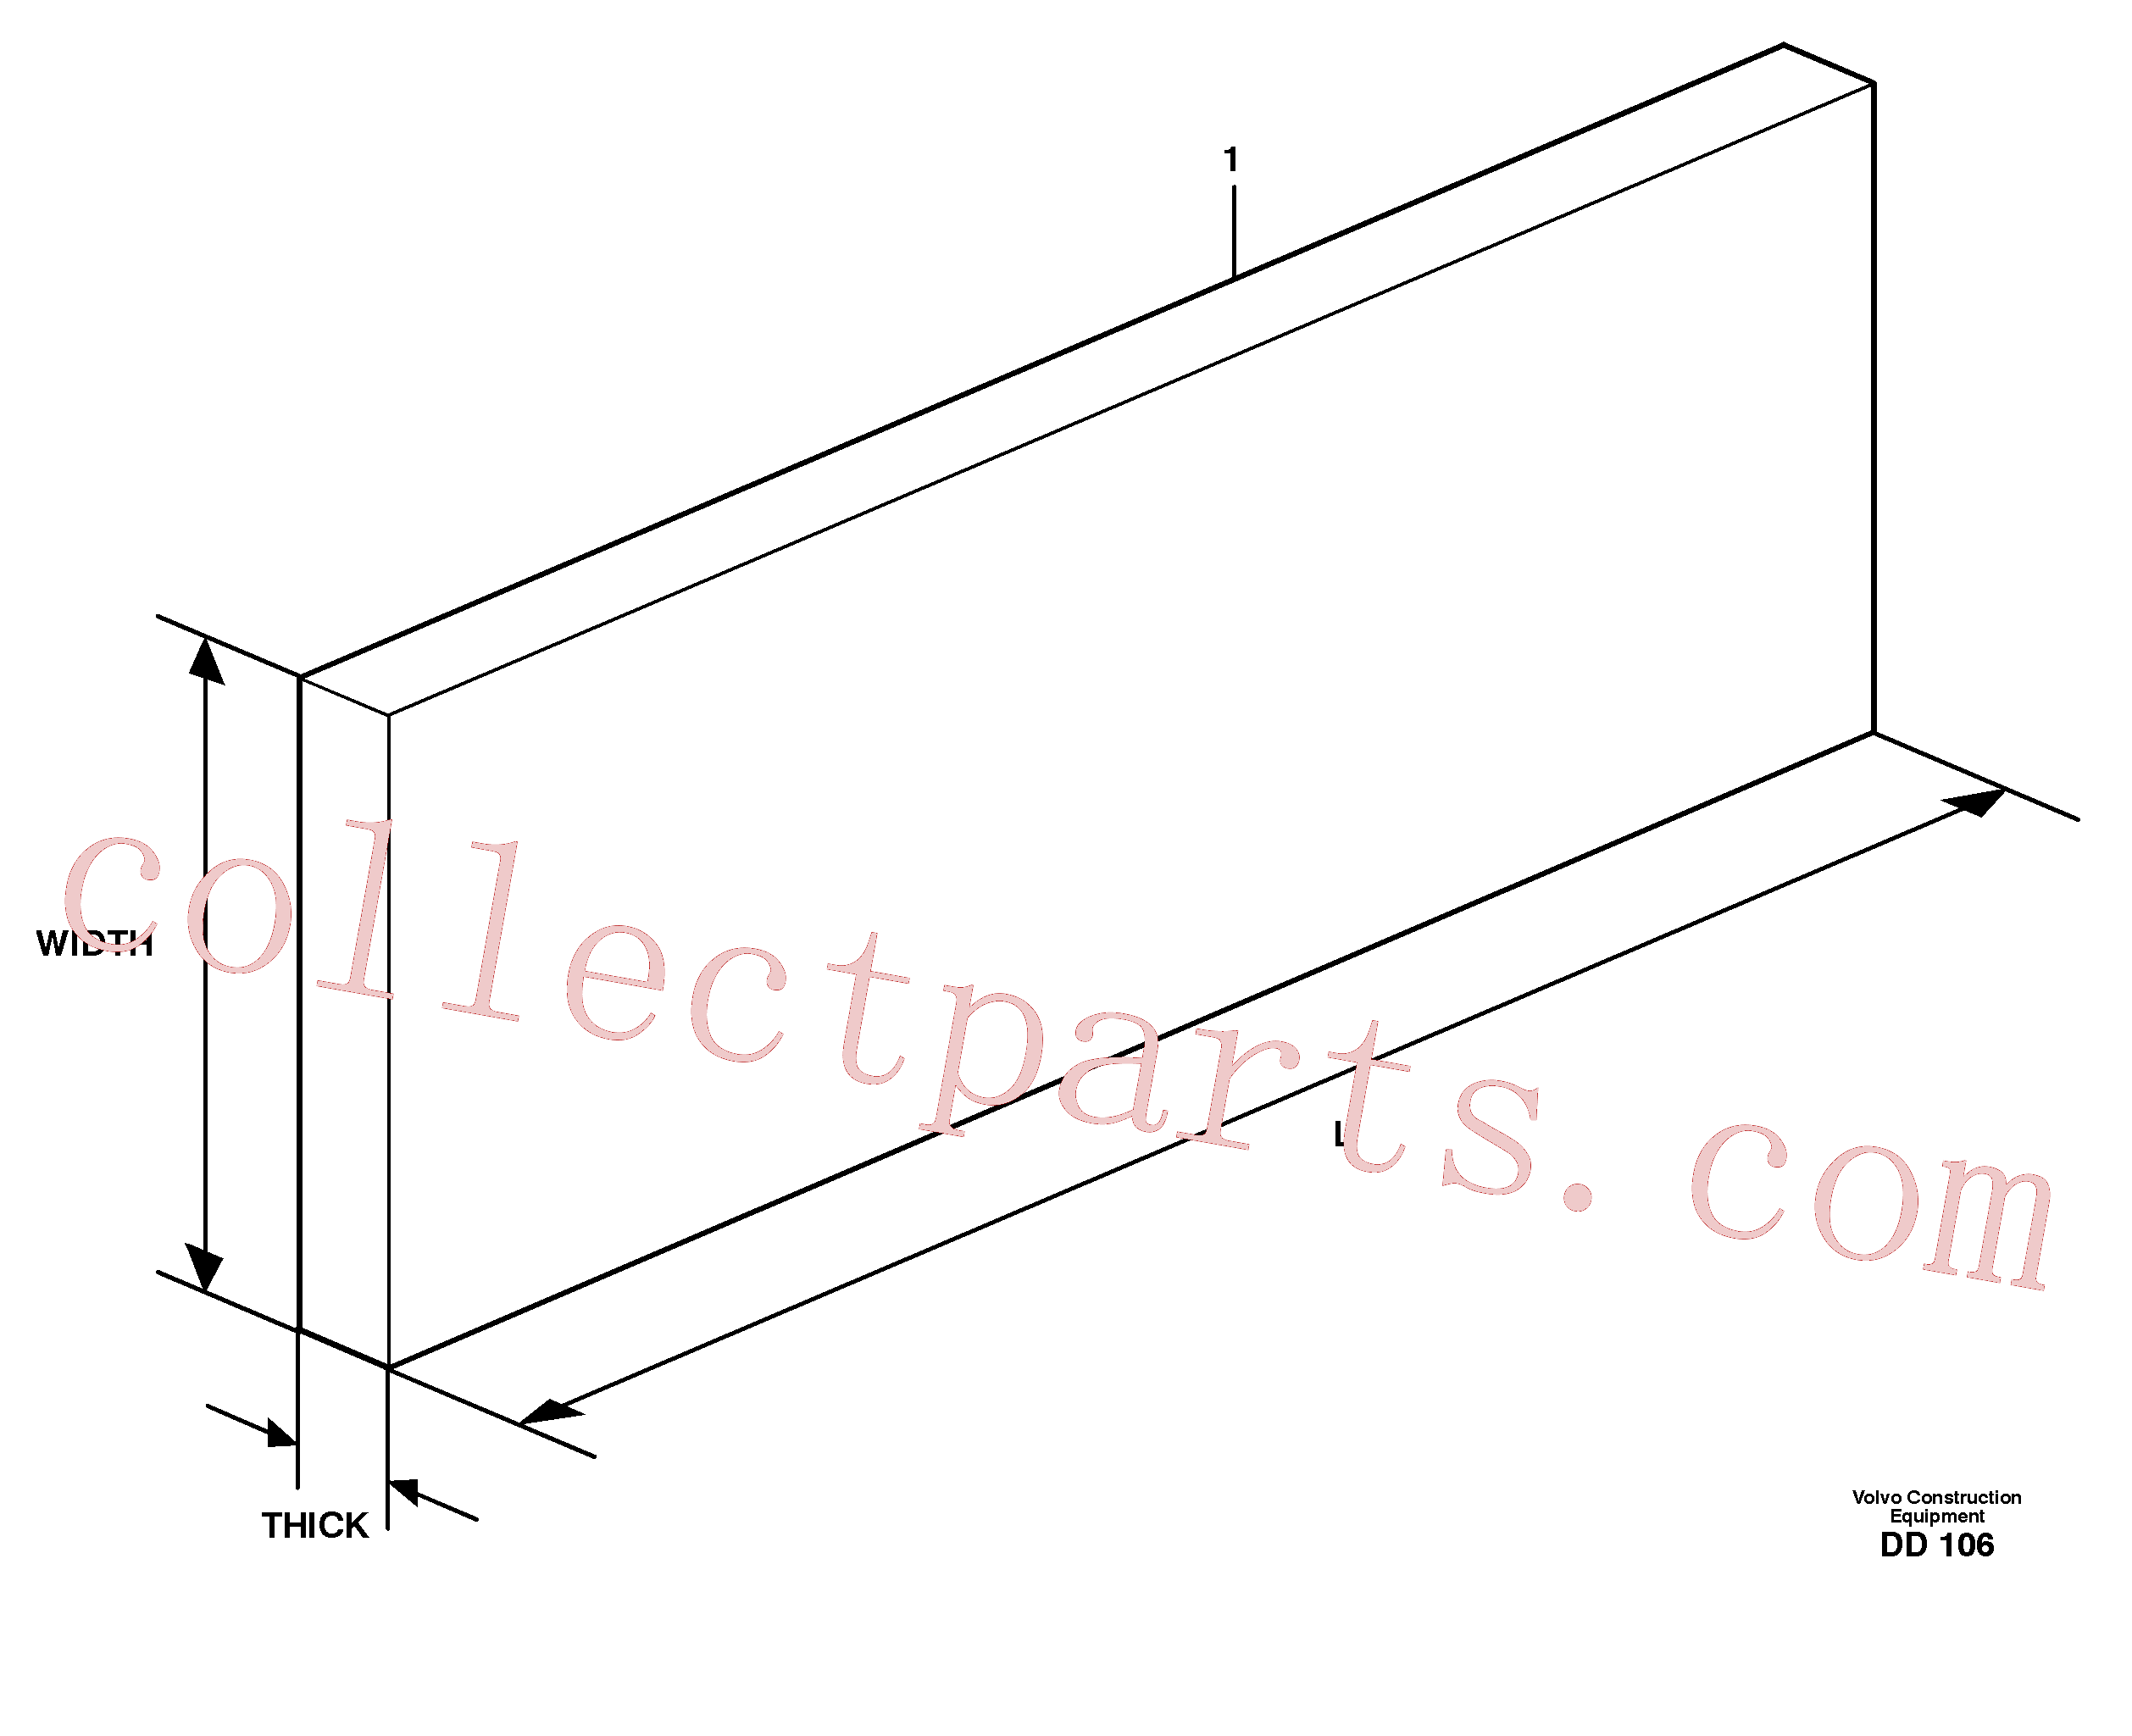 VOE11990981 for Volvo Wear resistant steel sheets, 500 Brinell(DD106 assembly)